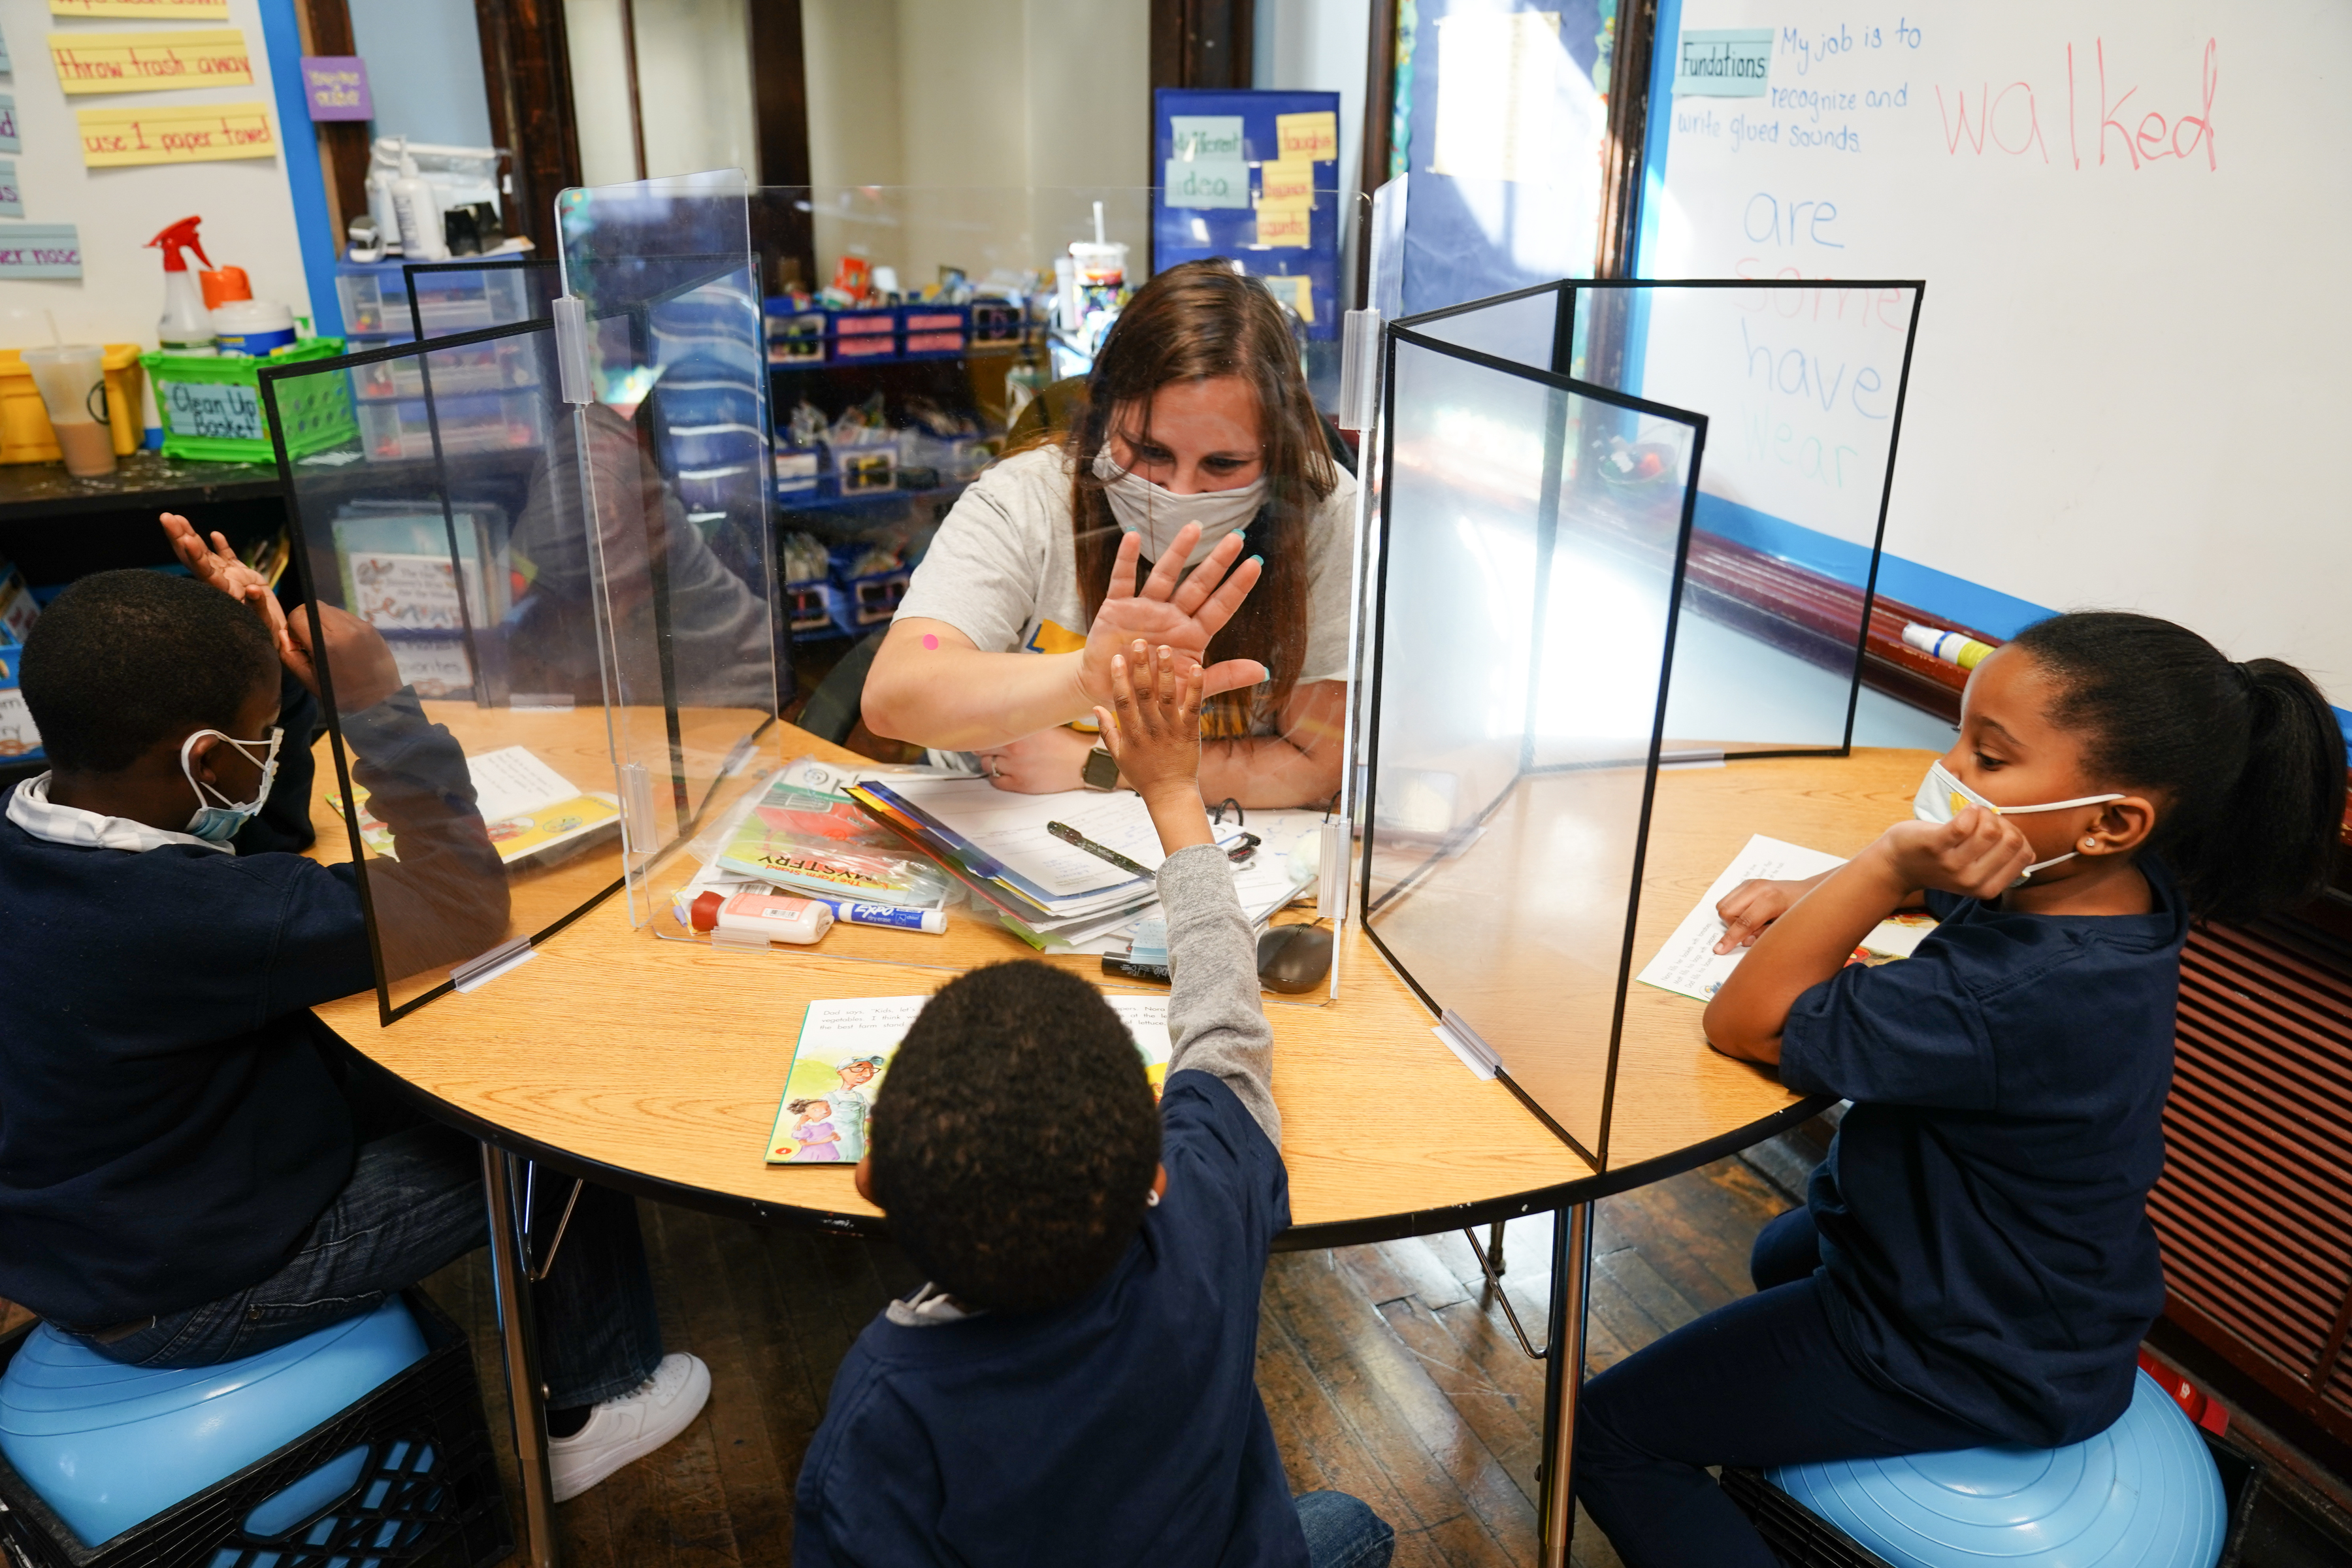 Michele Matza, back center, gives a high five to student Mershon Stevenson though a clear divider as she teaches at Belmont Charter School.